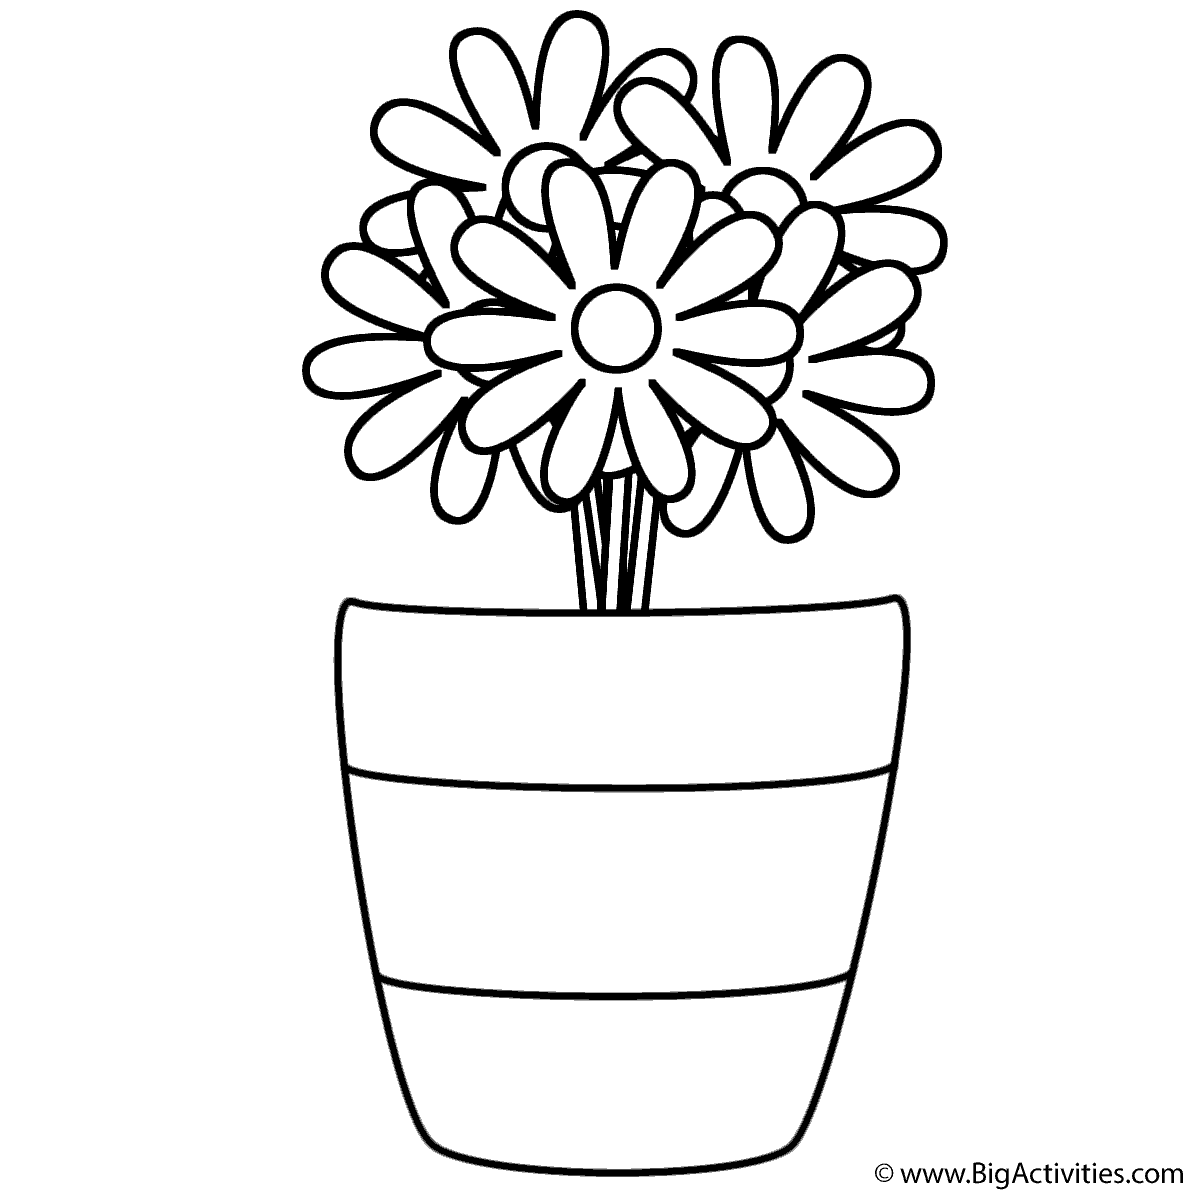 Flowers In Vase With Stripes